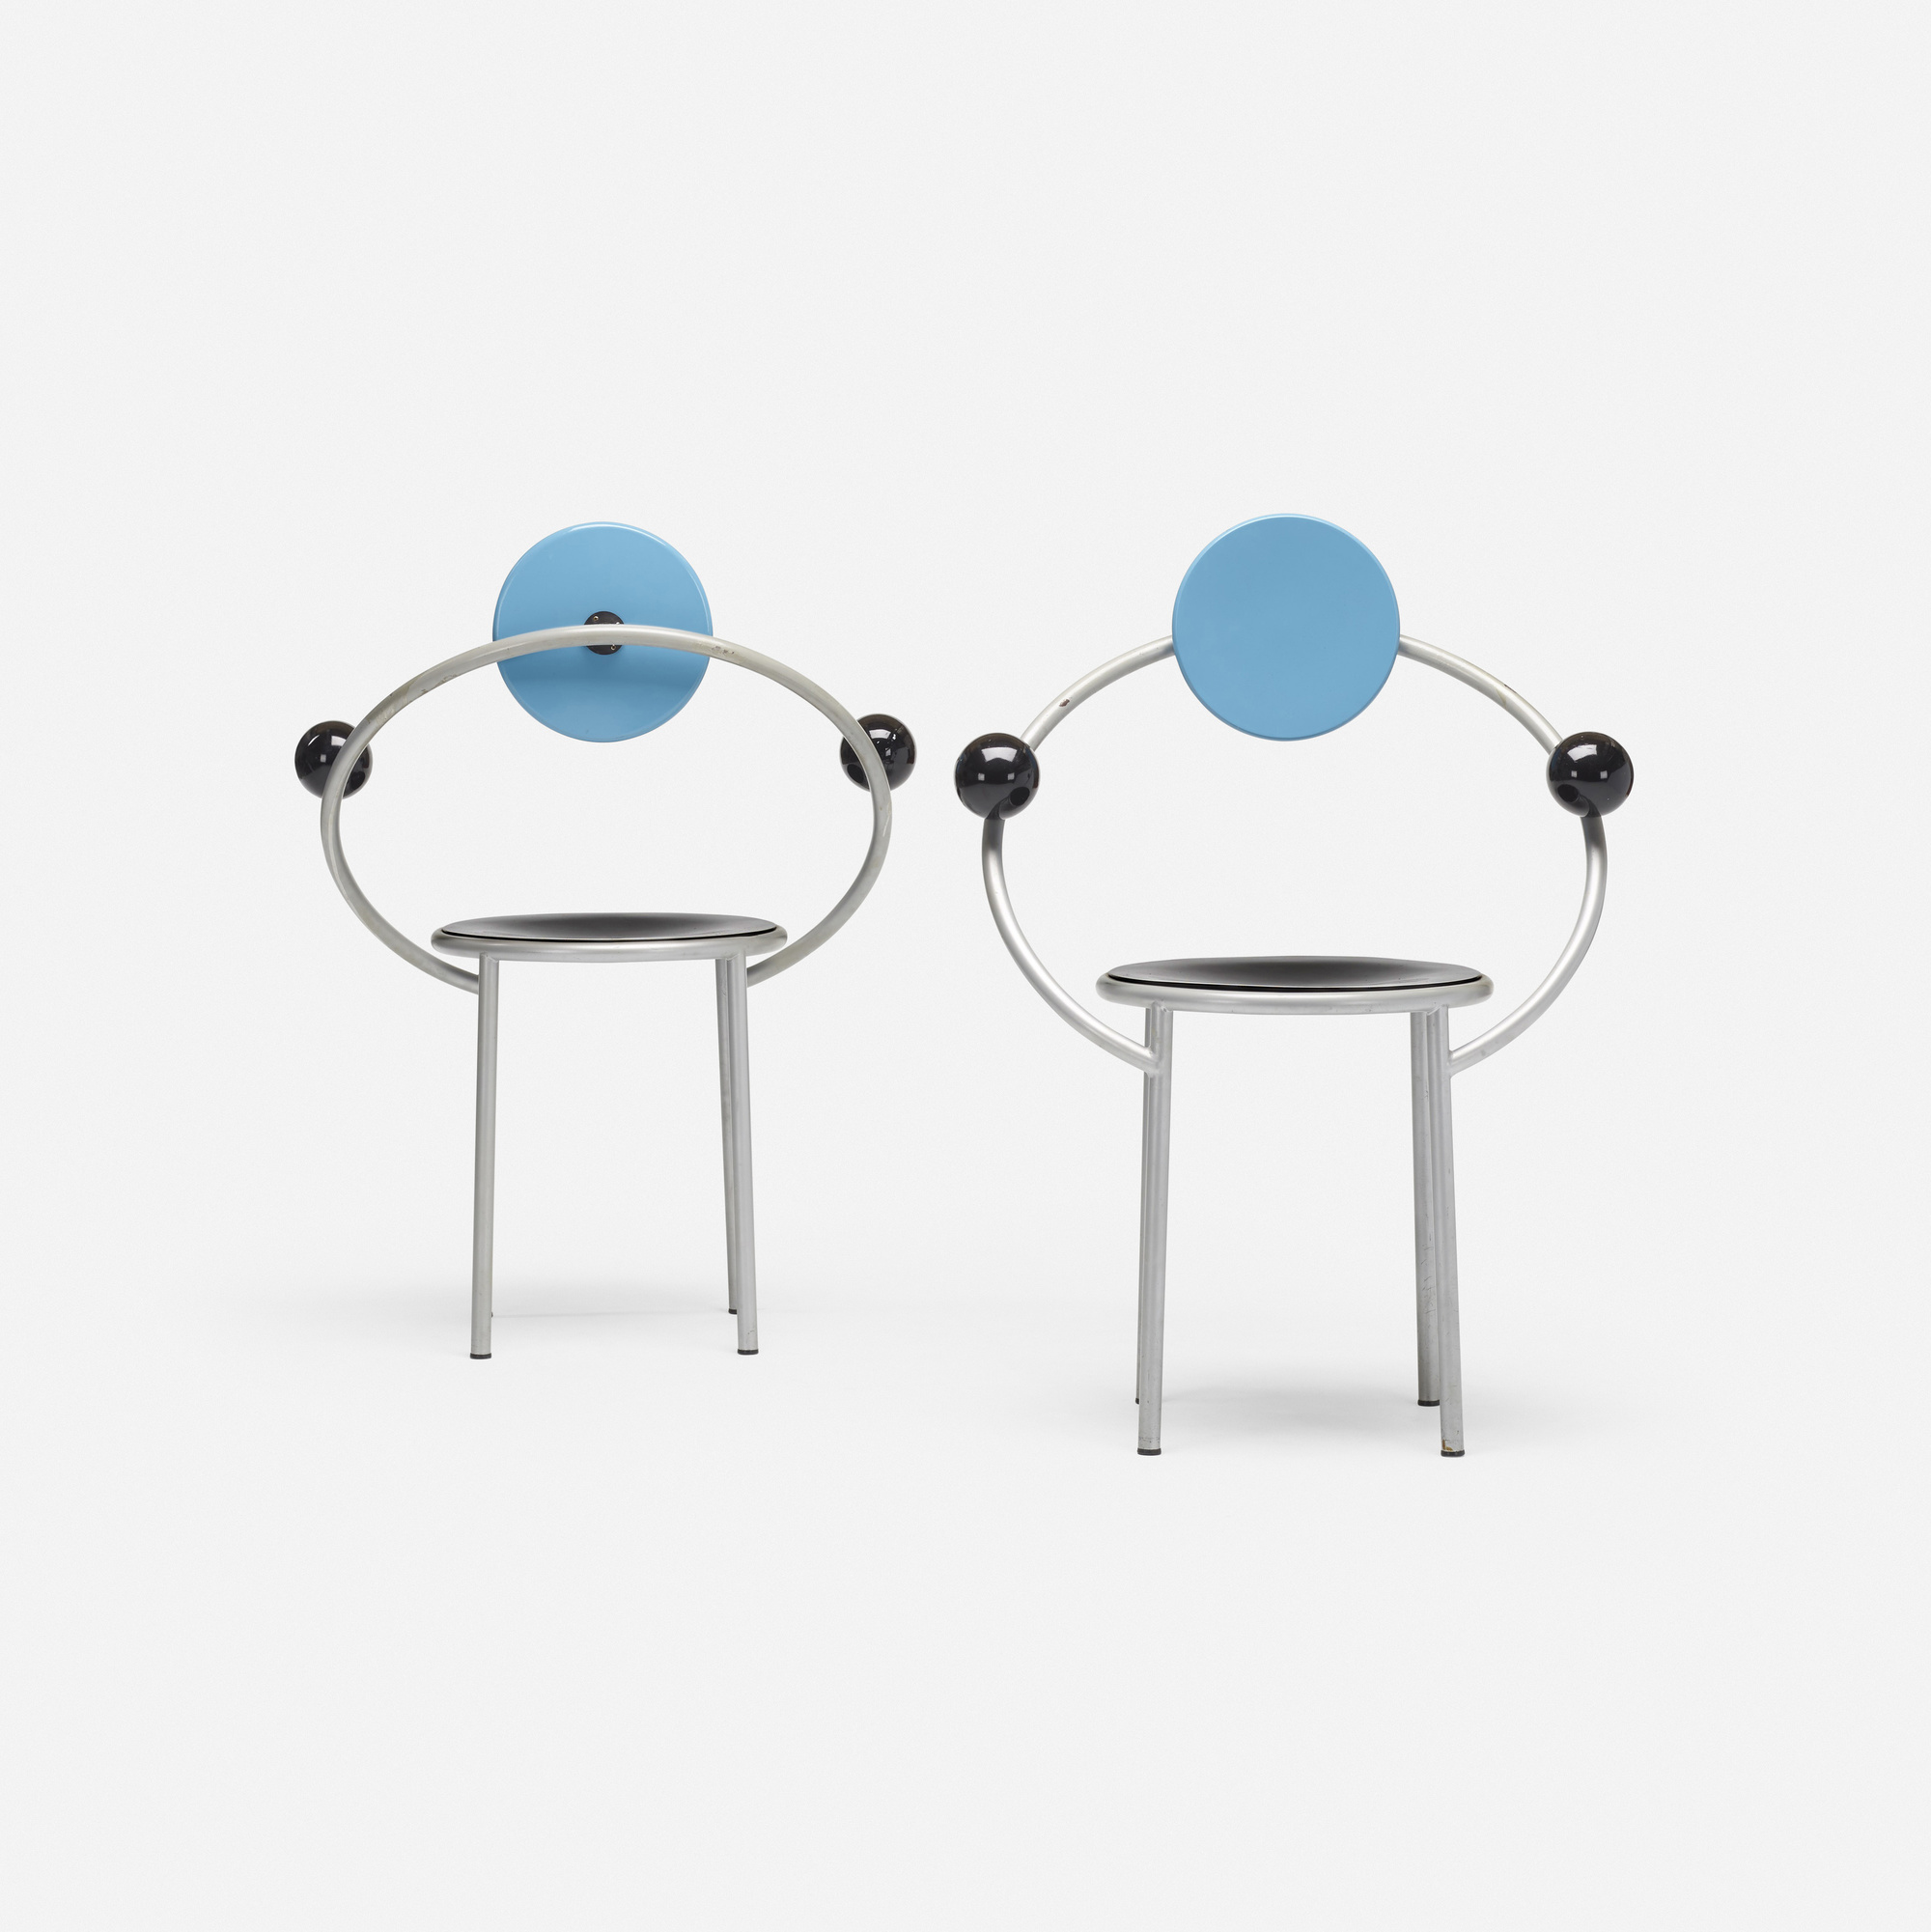 235: Michele De Lucchi / First chairs, pair (1 of 3)